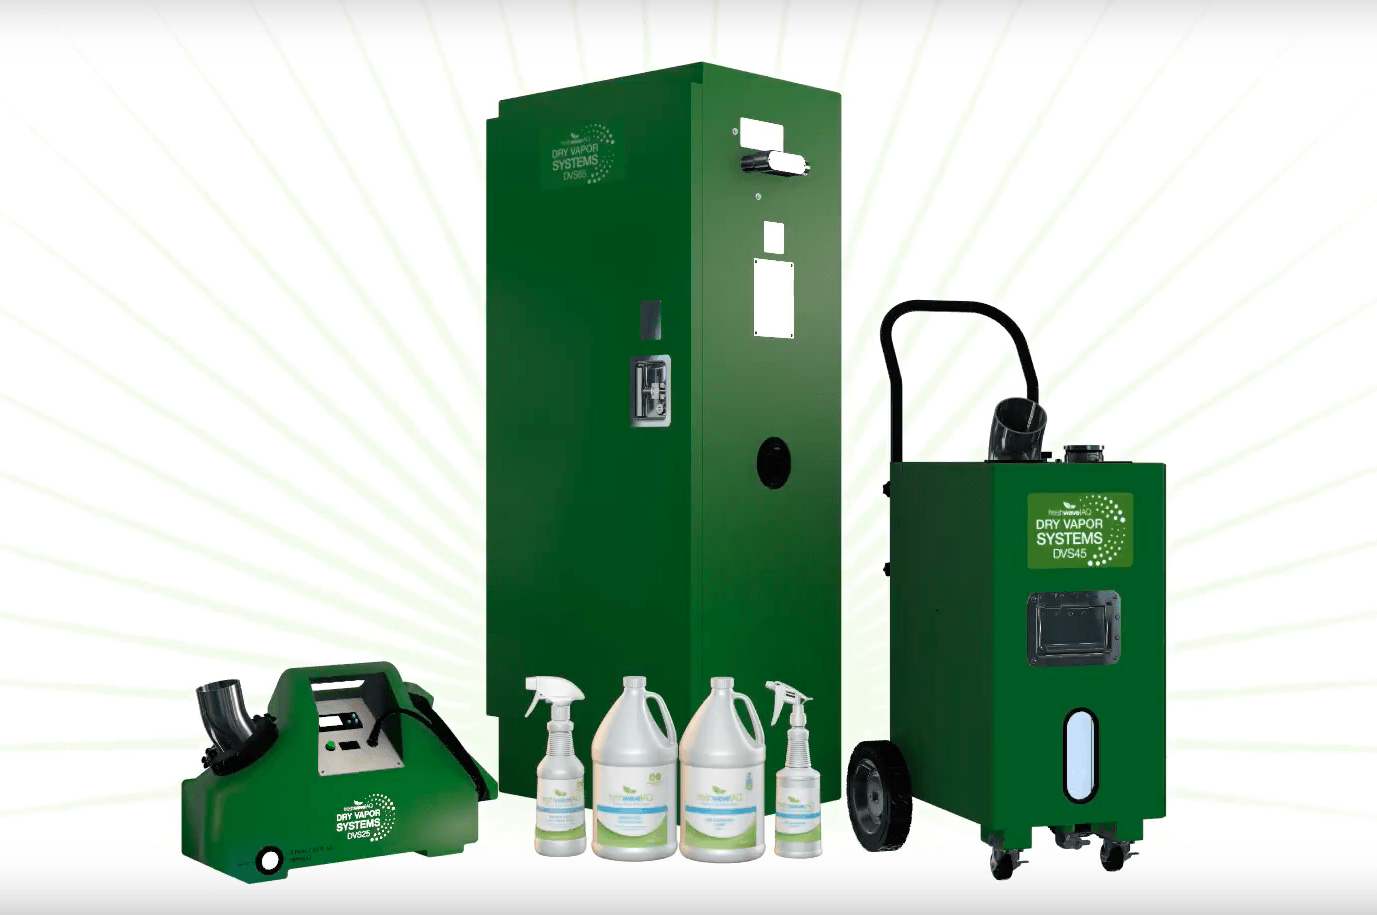 Dry Vapor Systems products